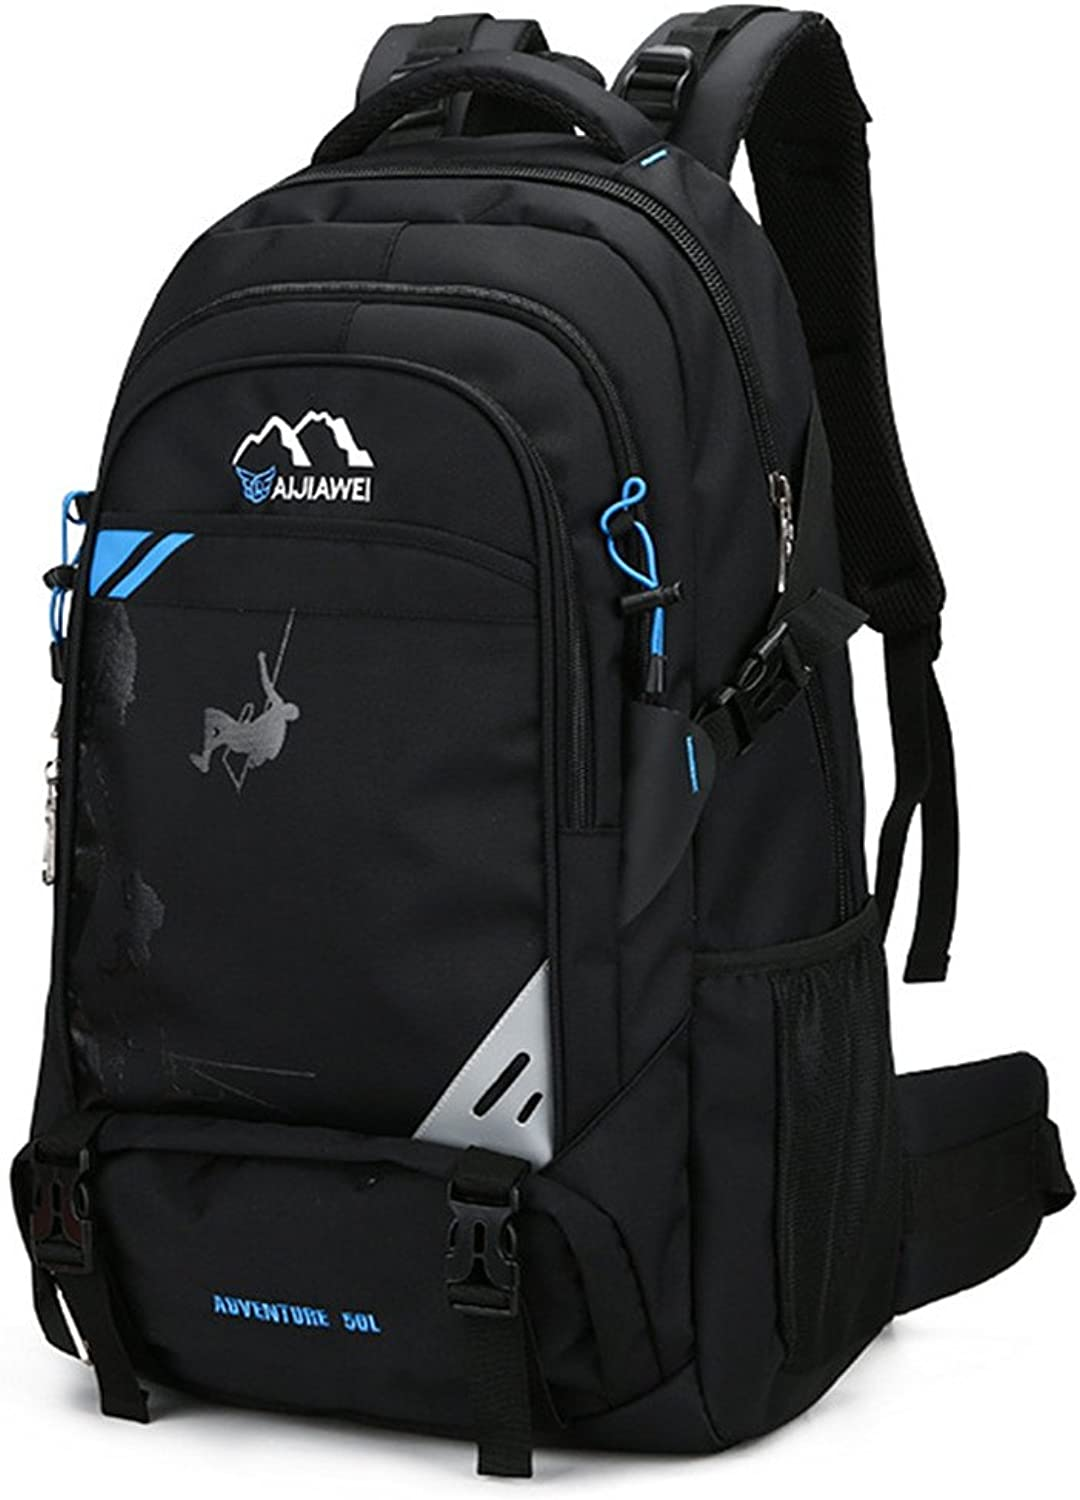 Backpacks Waterproof and Breathable Multifunction Travel by Walking Climbing Leisure Sport Neutral Package Suitable for Outdoor Use (color   Black blueee)